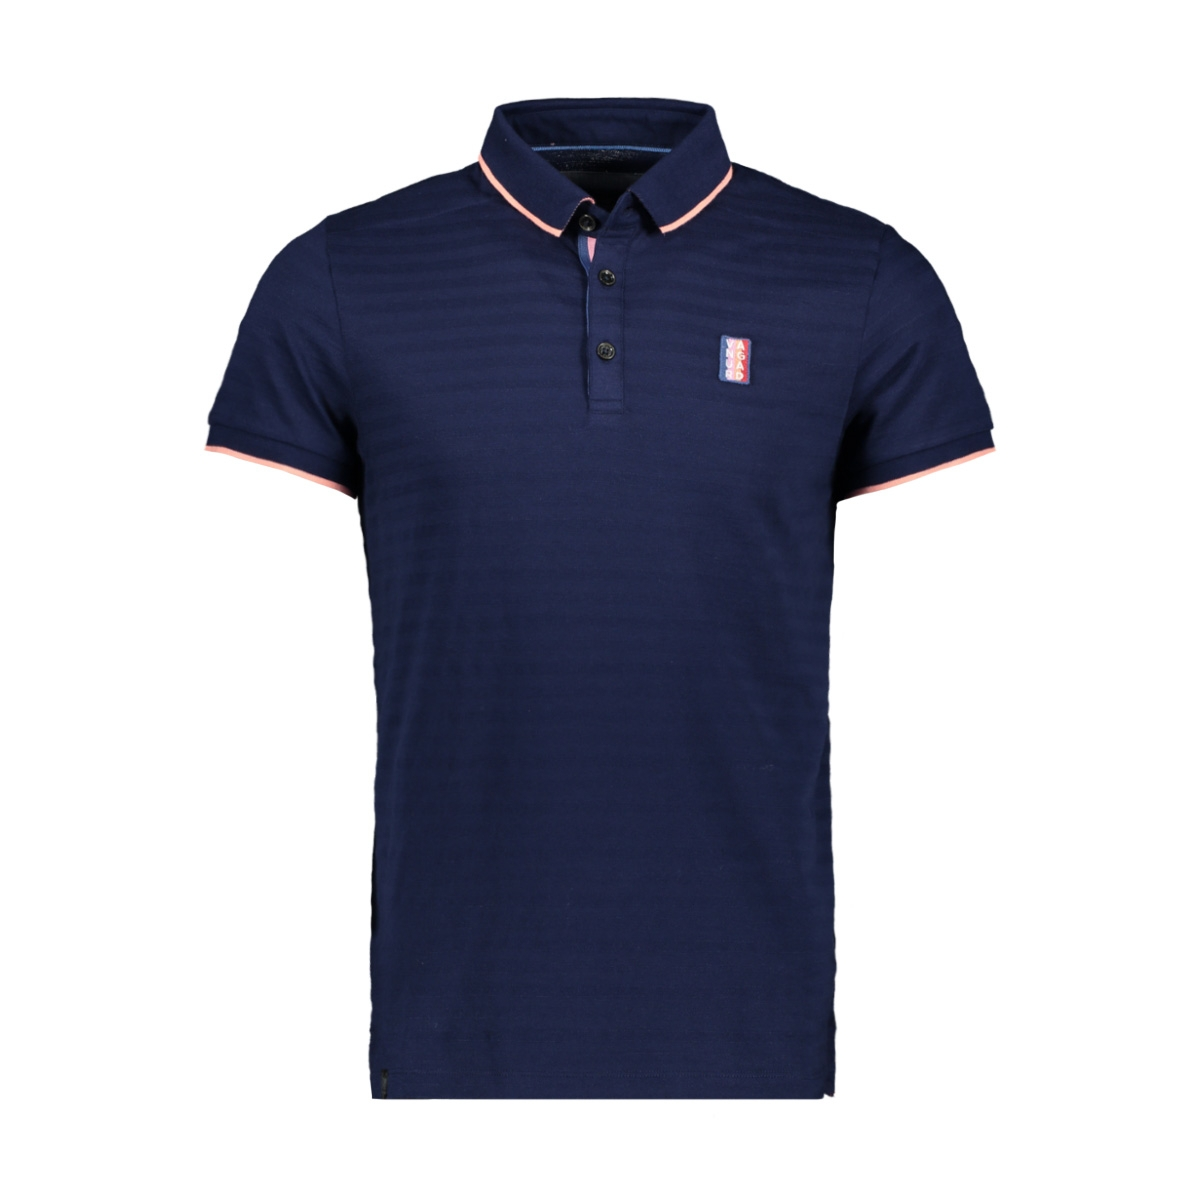 short sleeve jersey structure polo vpss203852 vanguard polo 5318